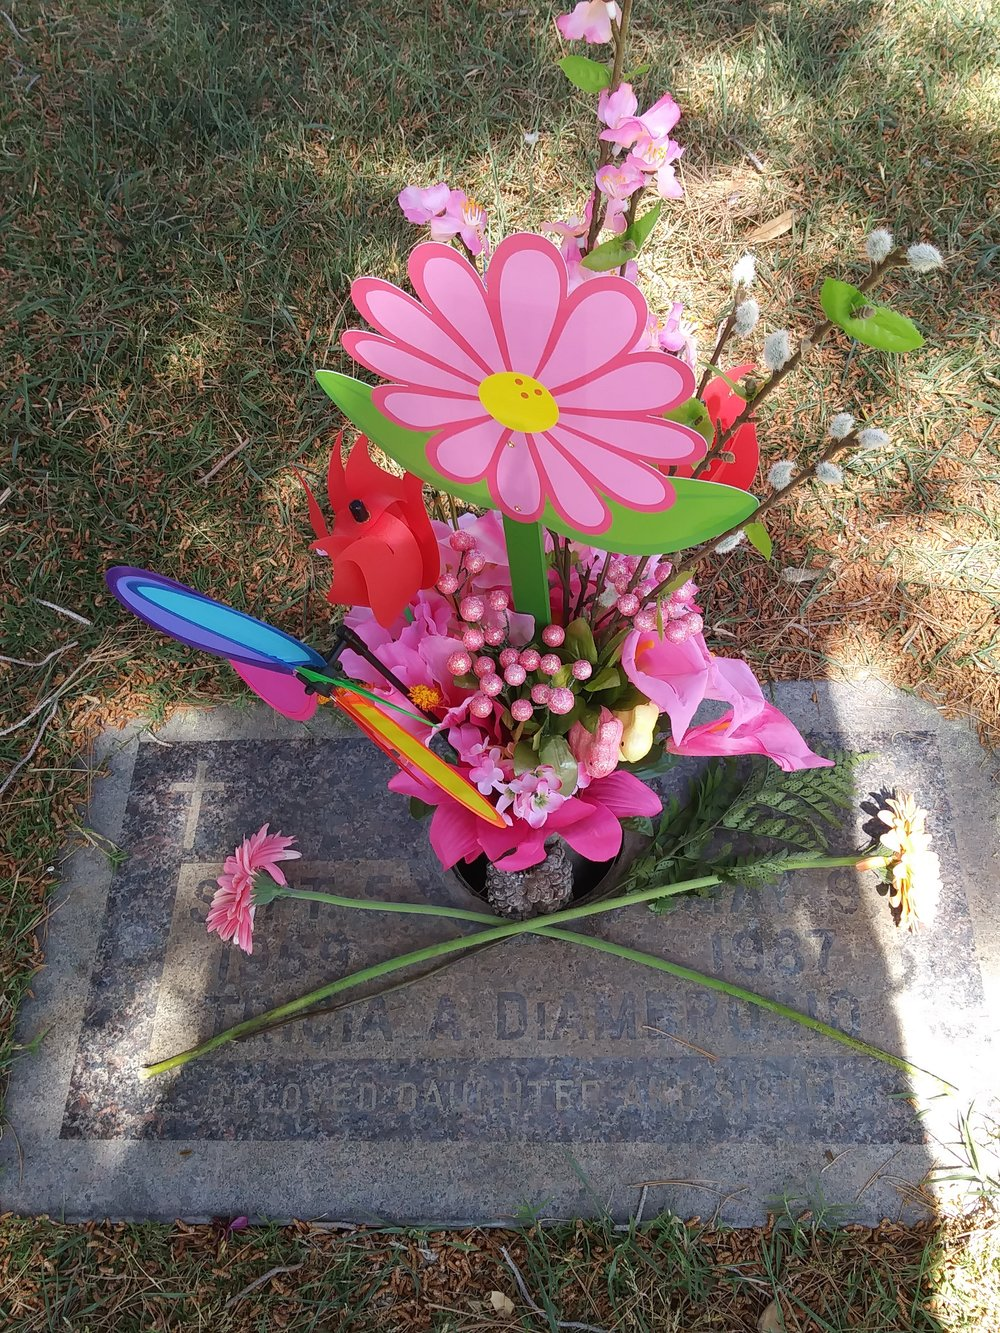 The grave stone of my best friend Tricia Diambrosia. In loving memory of you.   Picture taken: May 2017